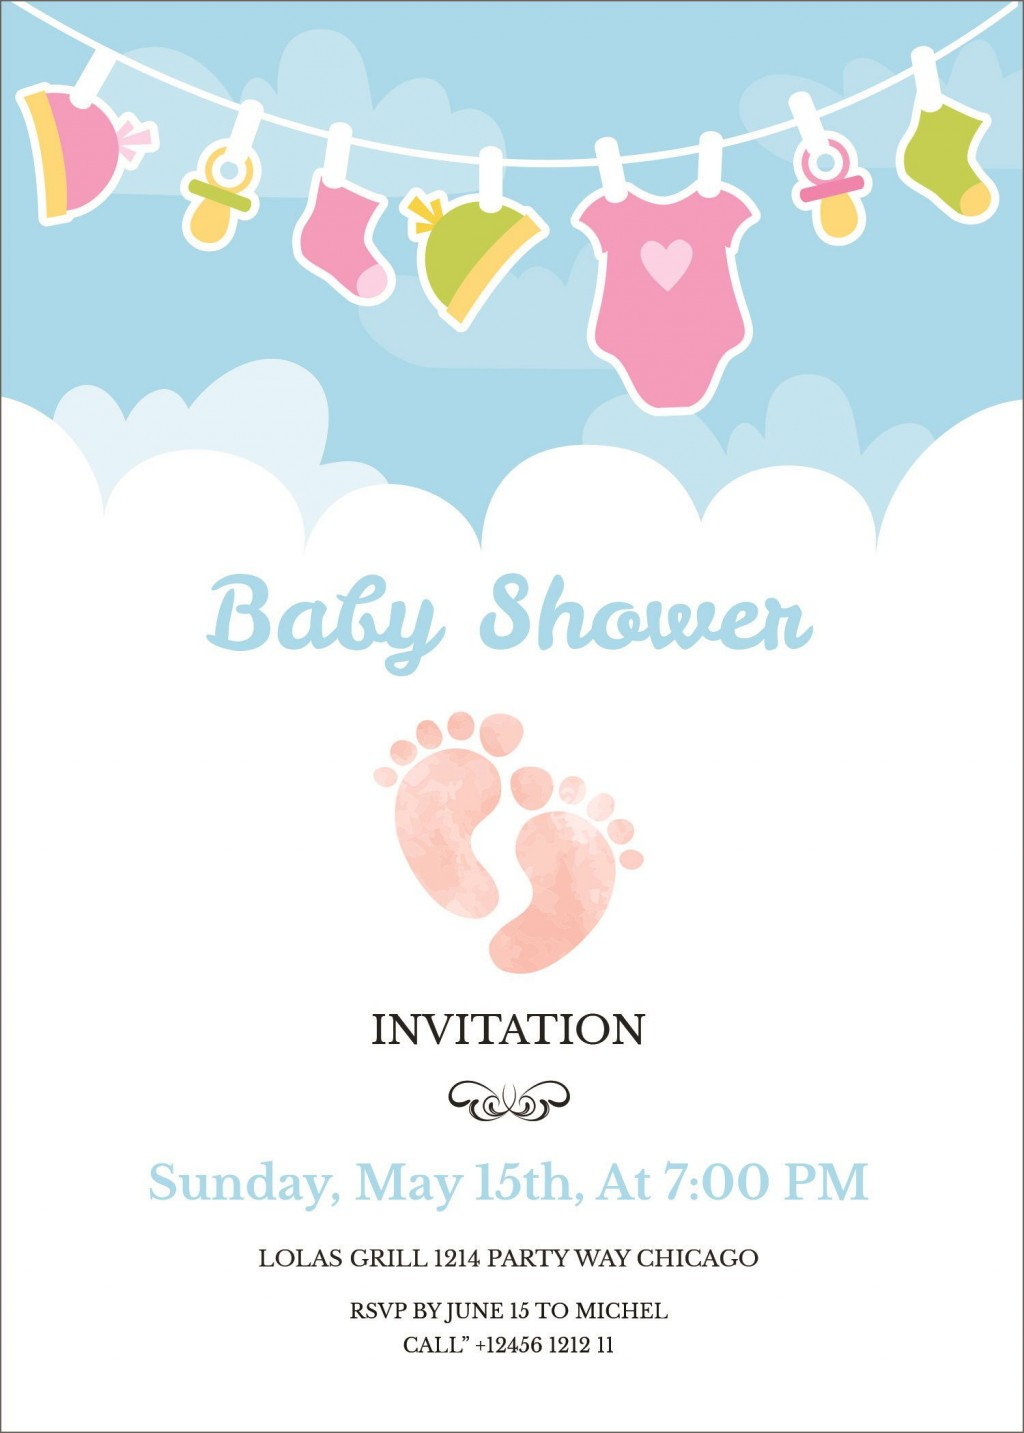 004 Exceptional Baby Shower Invitation Template Image  Editable Girl Downloadable Free Pdf VirtualLarge